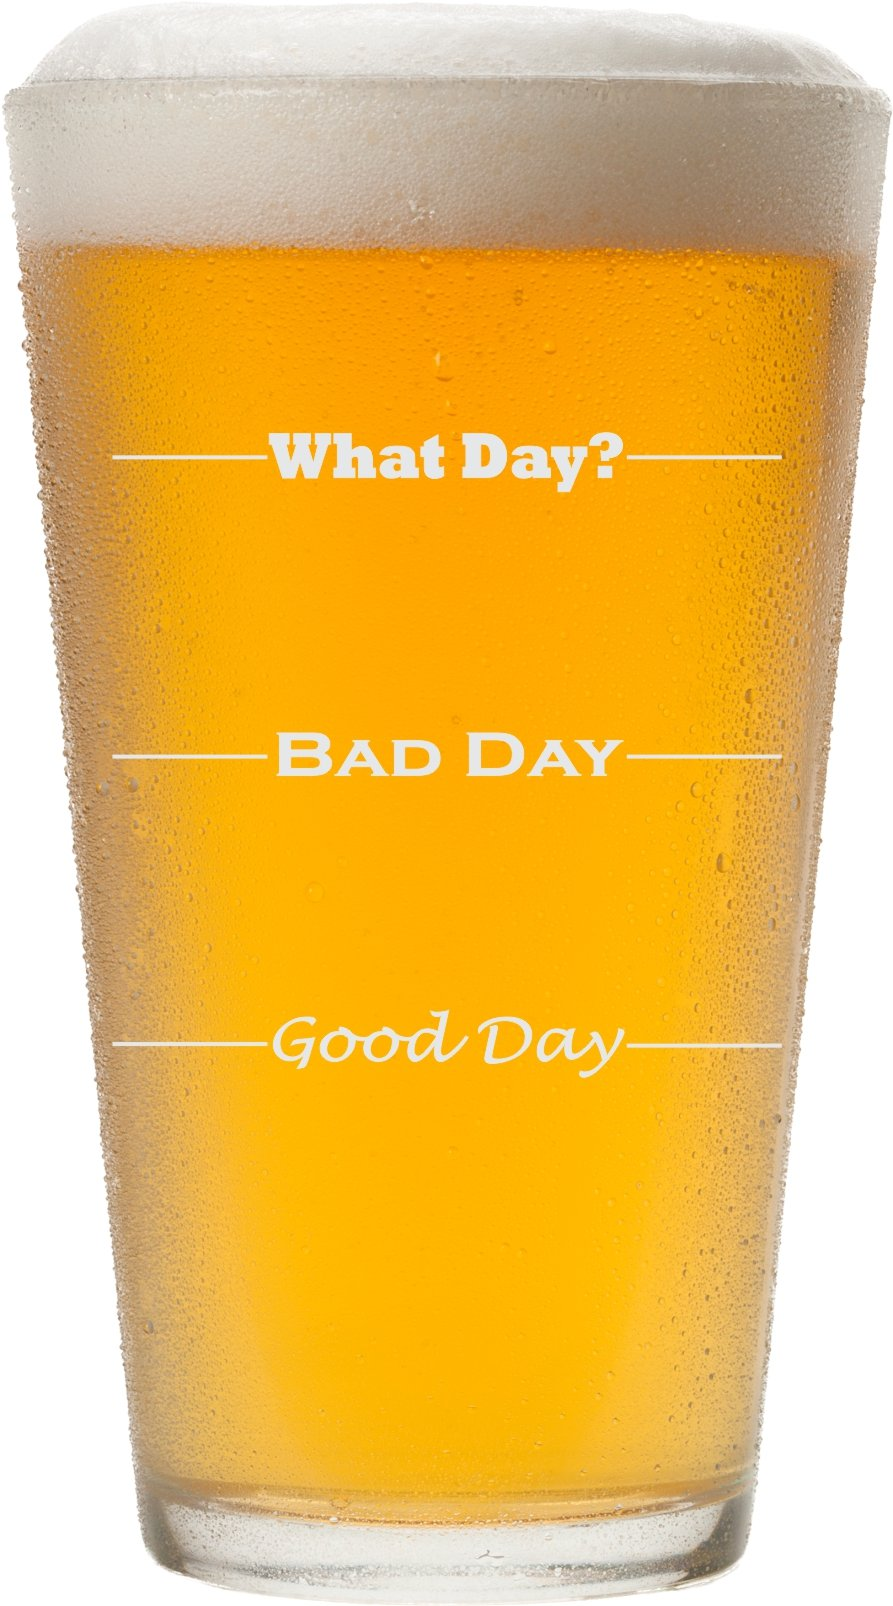 Good Day, Bad Day - Funny 16 oz Pint Beer Glass, Permanently Etched, Gift for Dad, Co-Worker, Friend, Boss, Father's Day - PG13 by Frederick Engraving (Image #1)